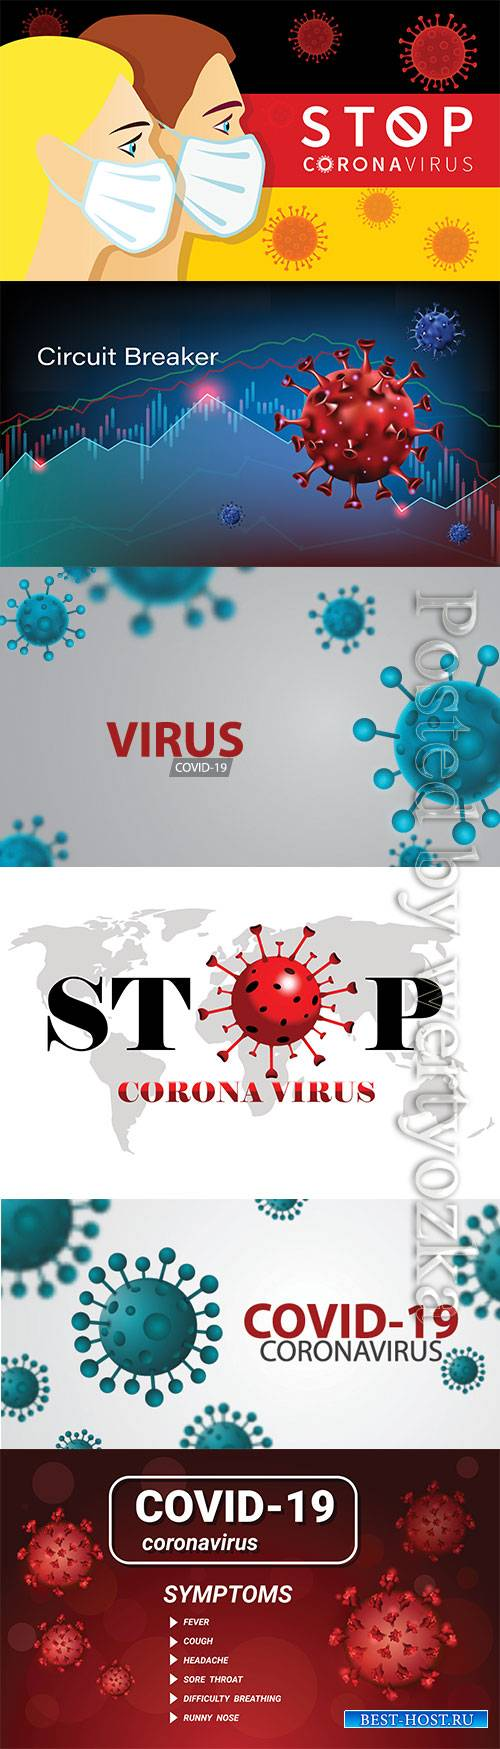 Pandemic coronavirus or covid-19 virus effect to stock market business